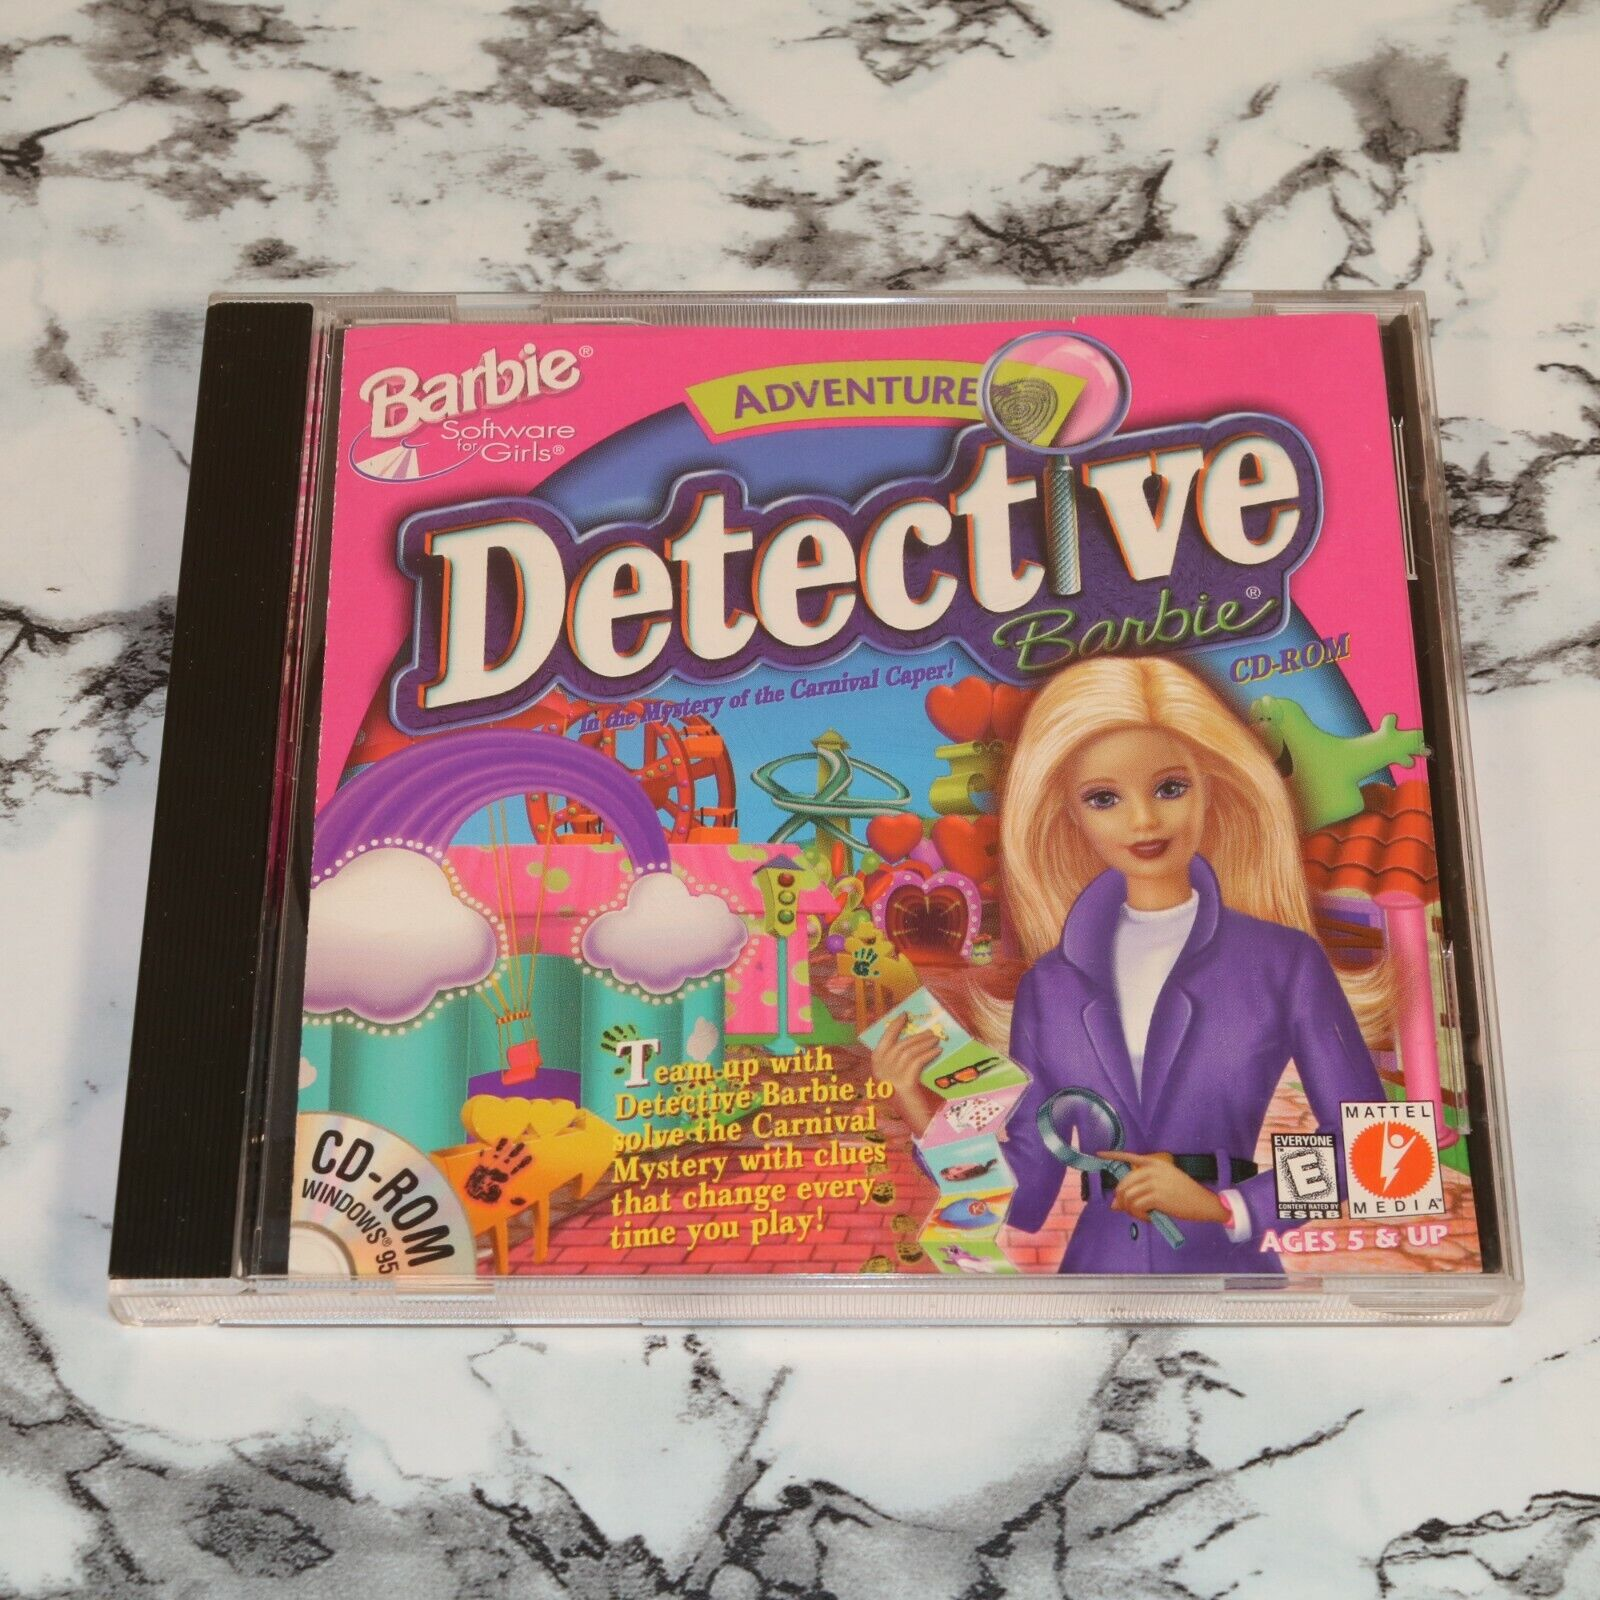 Adventure Detective Barbie - Mystery Of The Carnival Caper PC CD-ROM, 2001  - $16.91